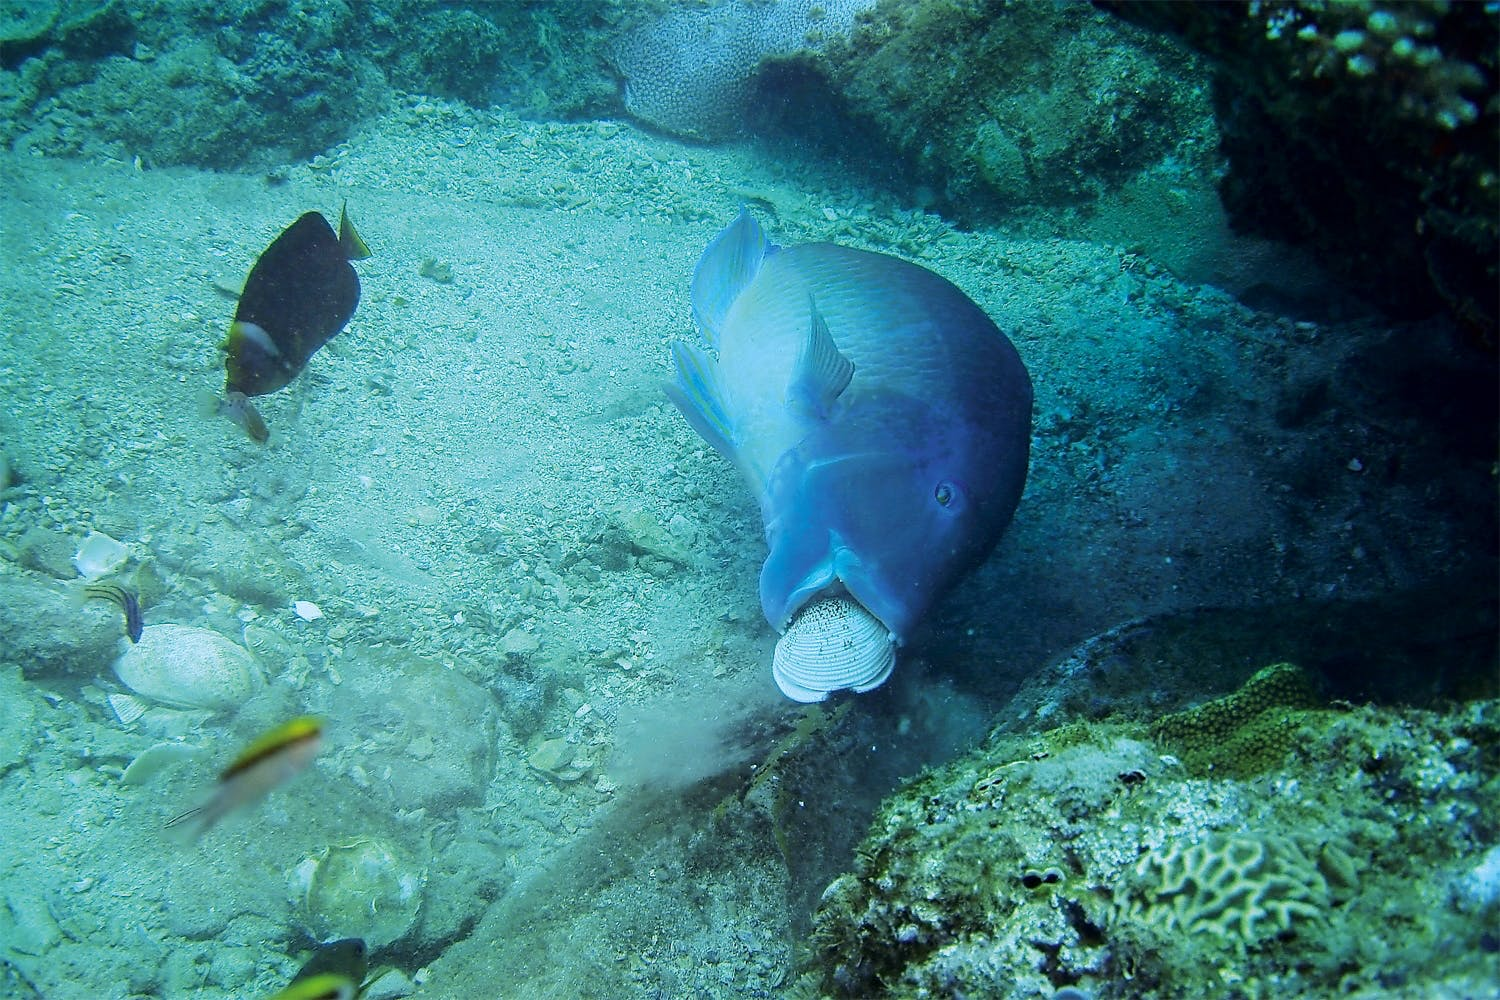 Wrasse using stone to open clam